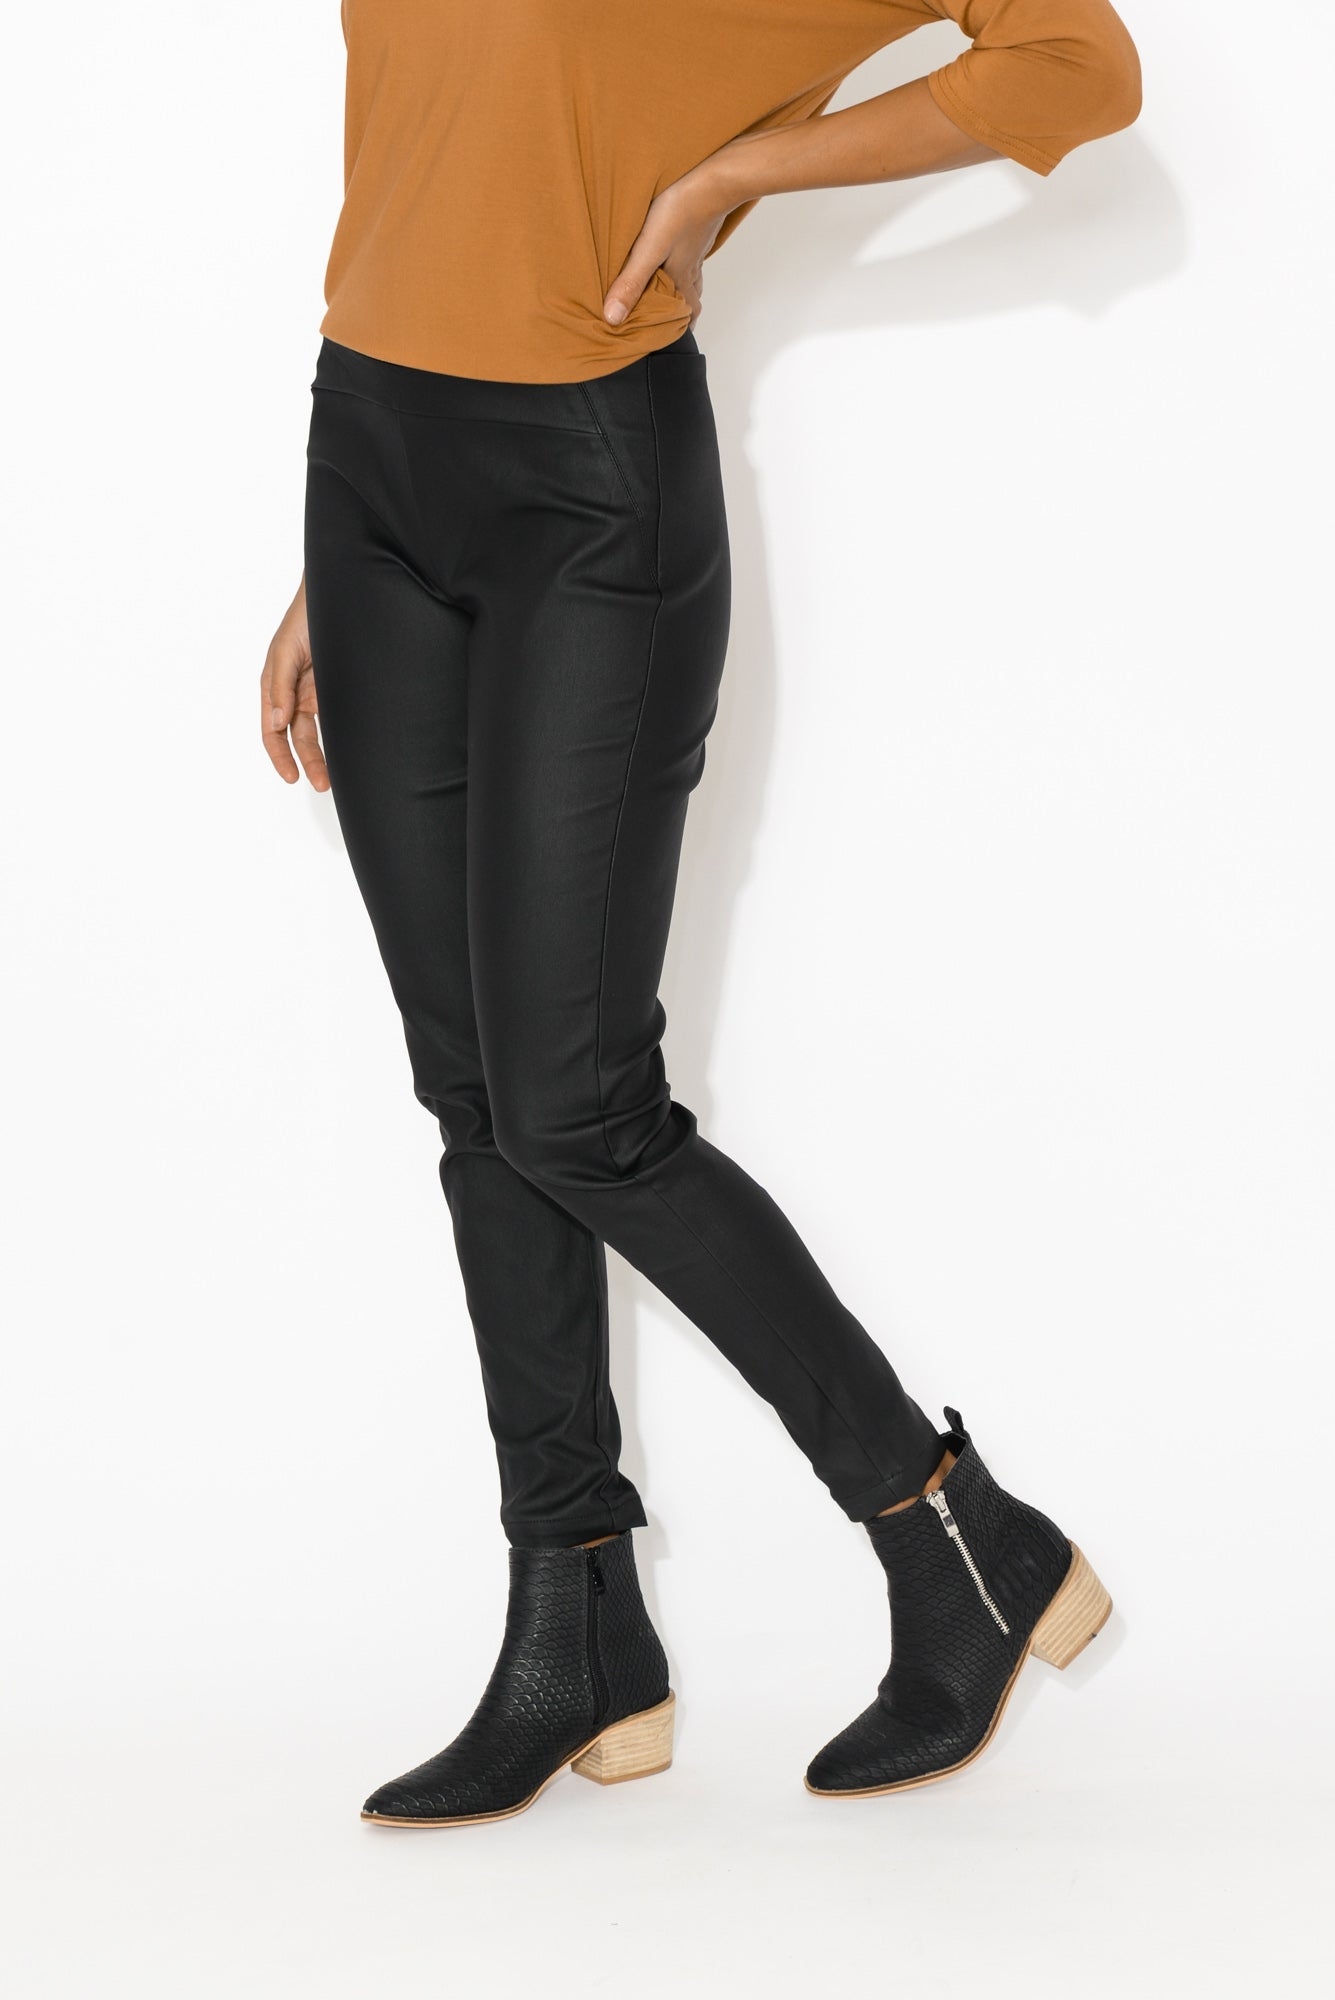 Hallie Black Wax Jeans